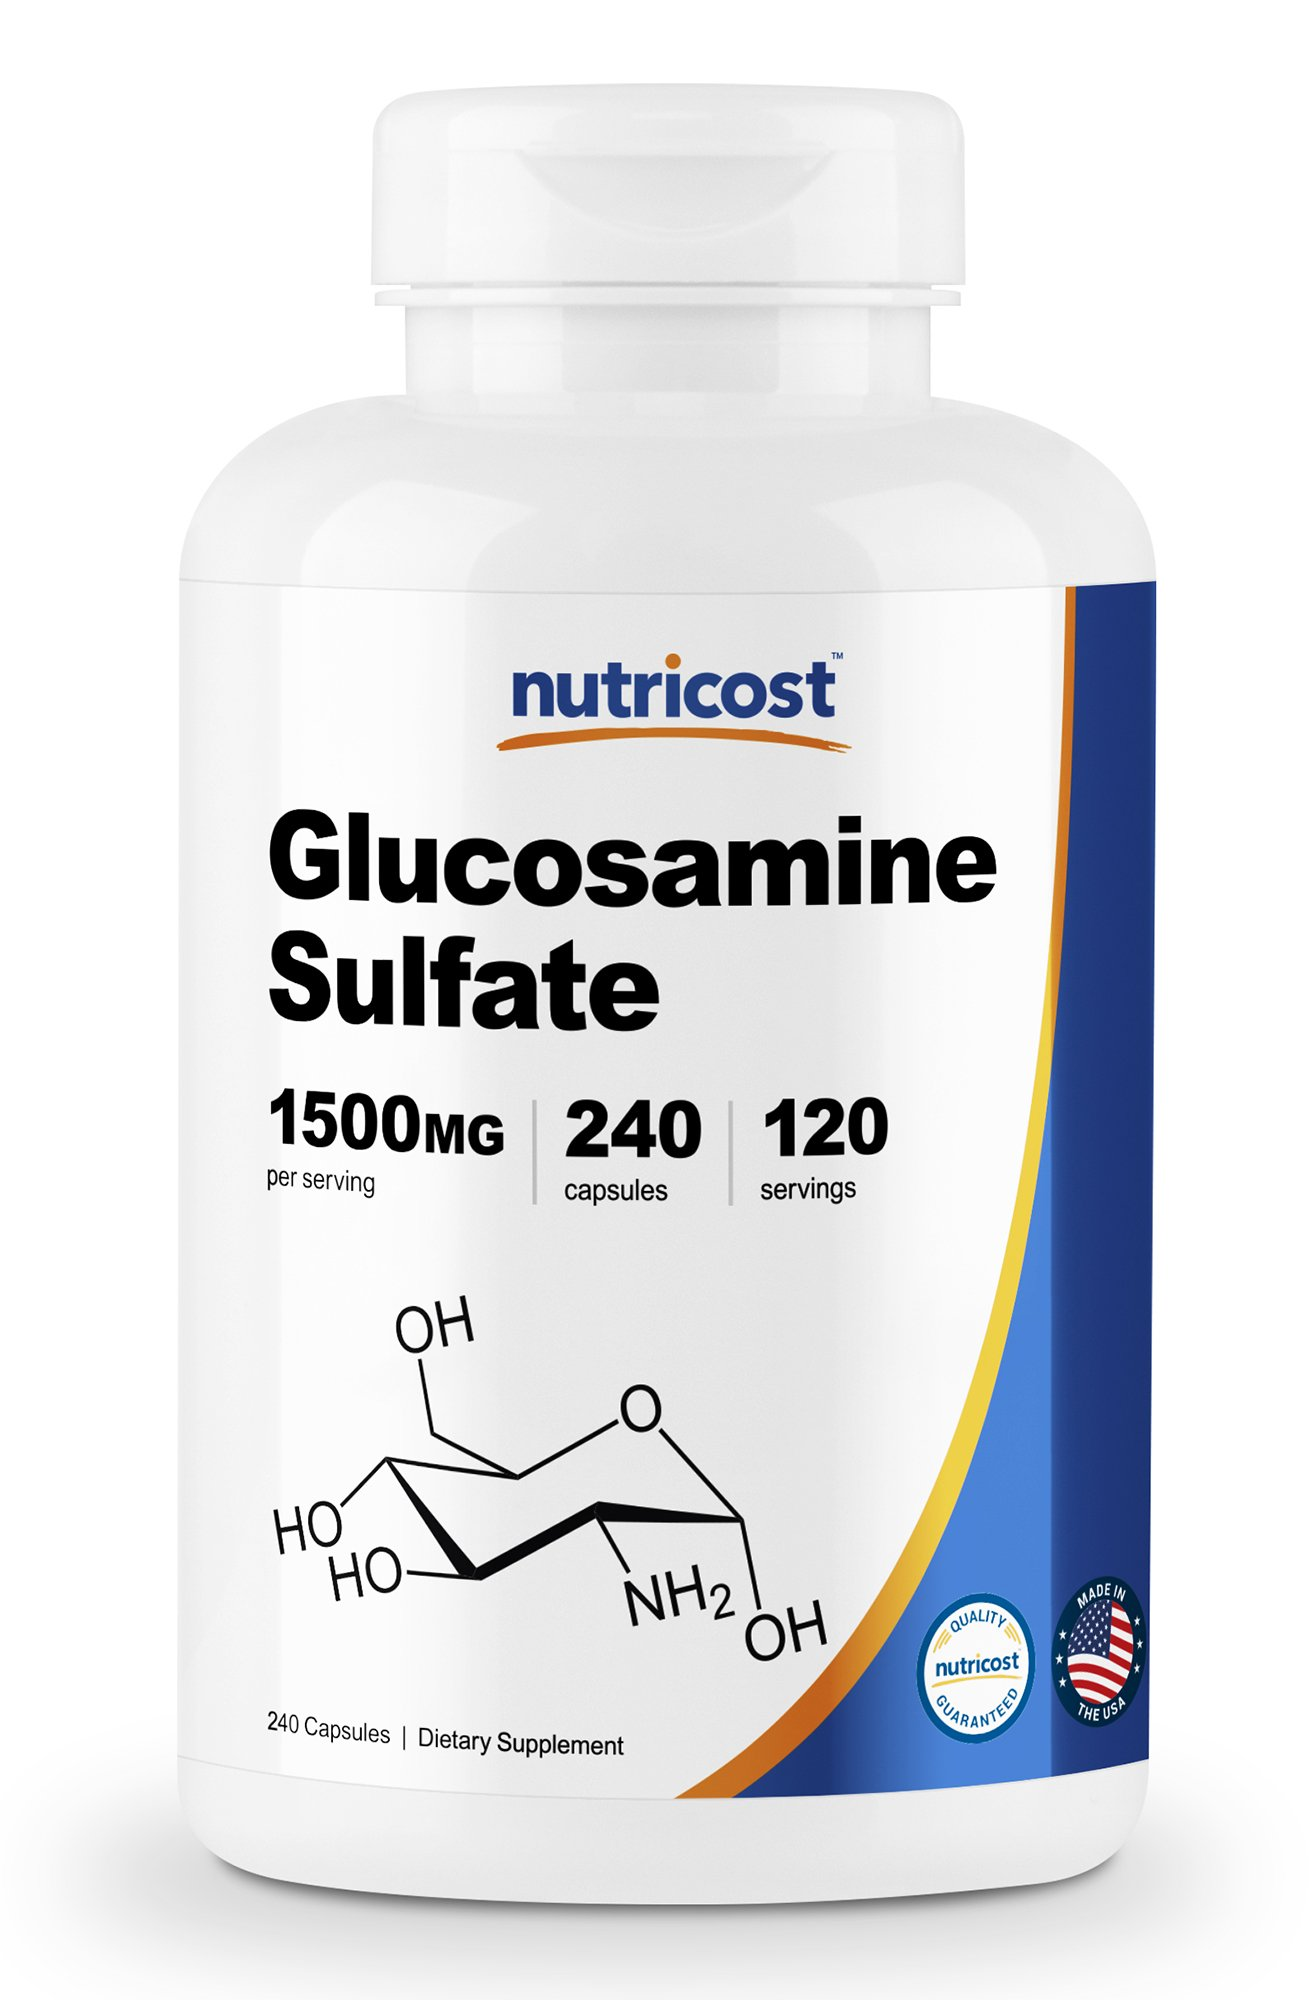 Nutricost Glucosamine Sulfate 750mg, 240 Capsules (1500mg Per Serving) by Nutricost